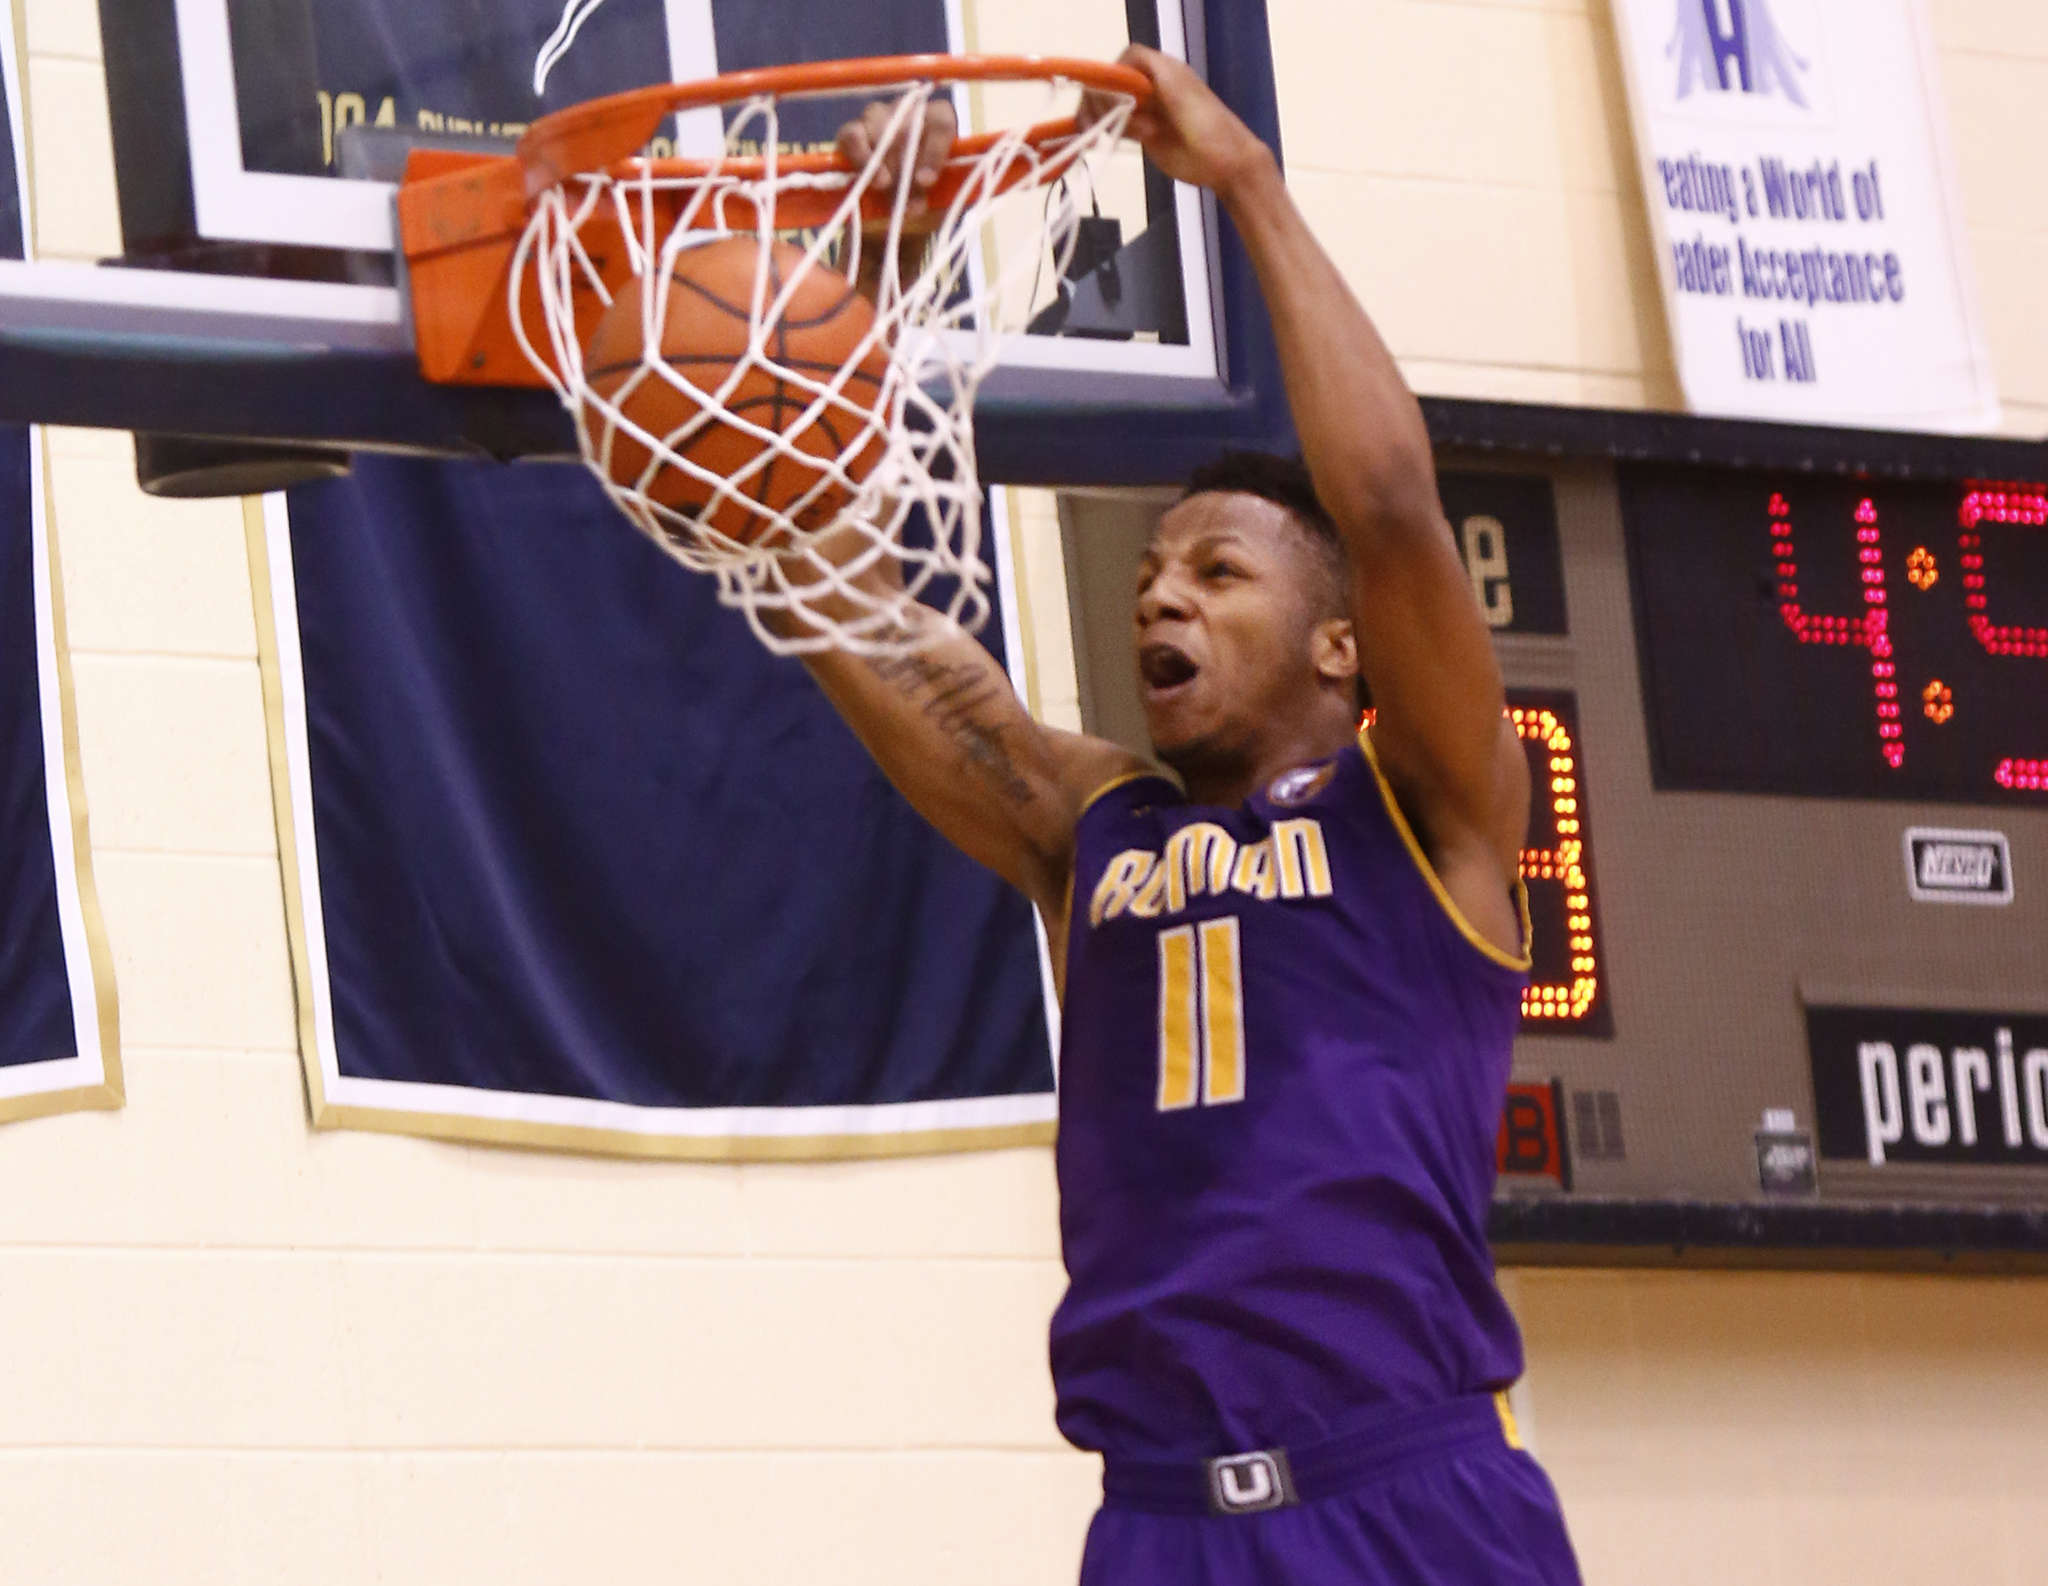 Roman Catholic´s Lamar Stevens and his teammates will take on the Dragons of Allderdice.